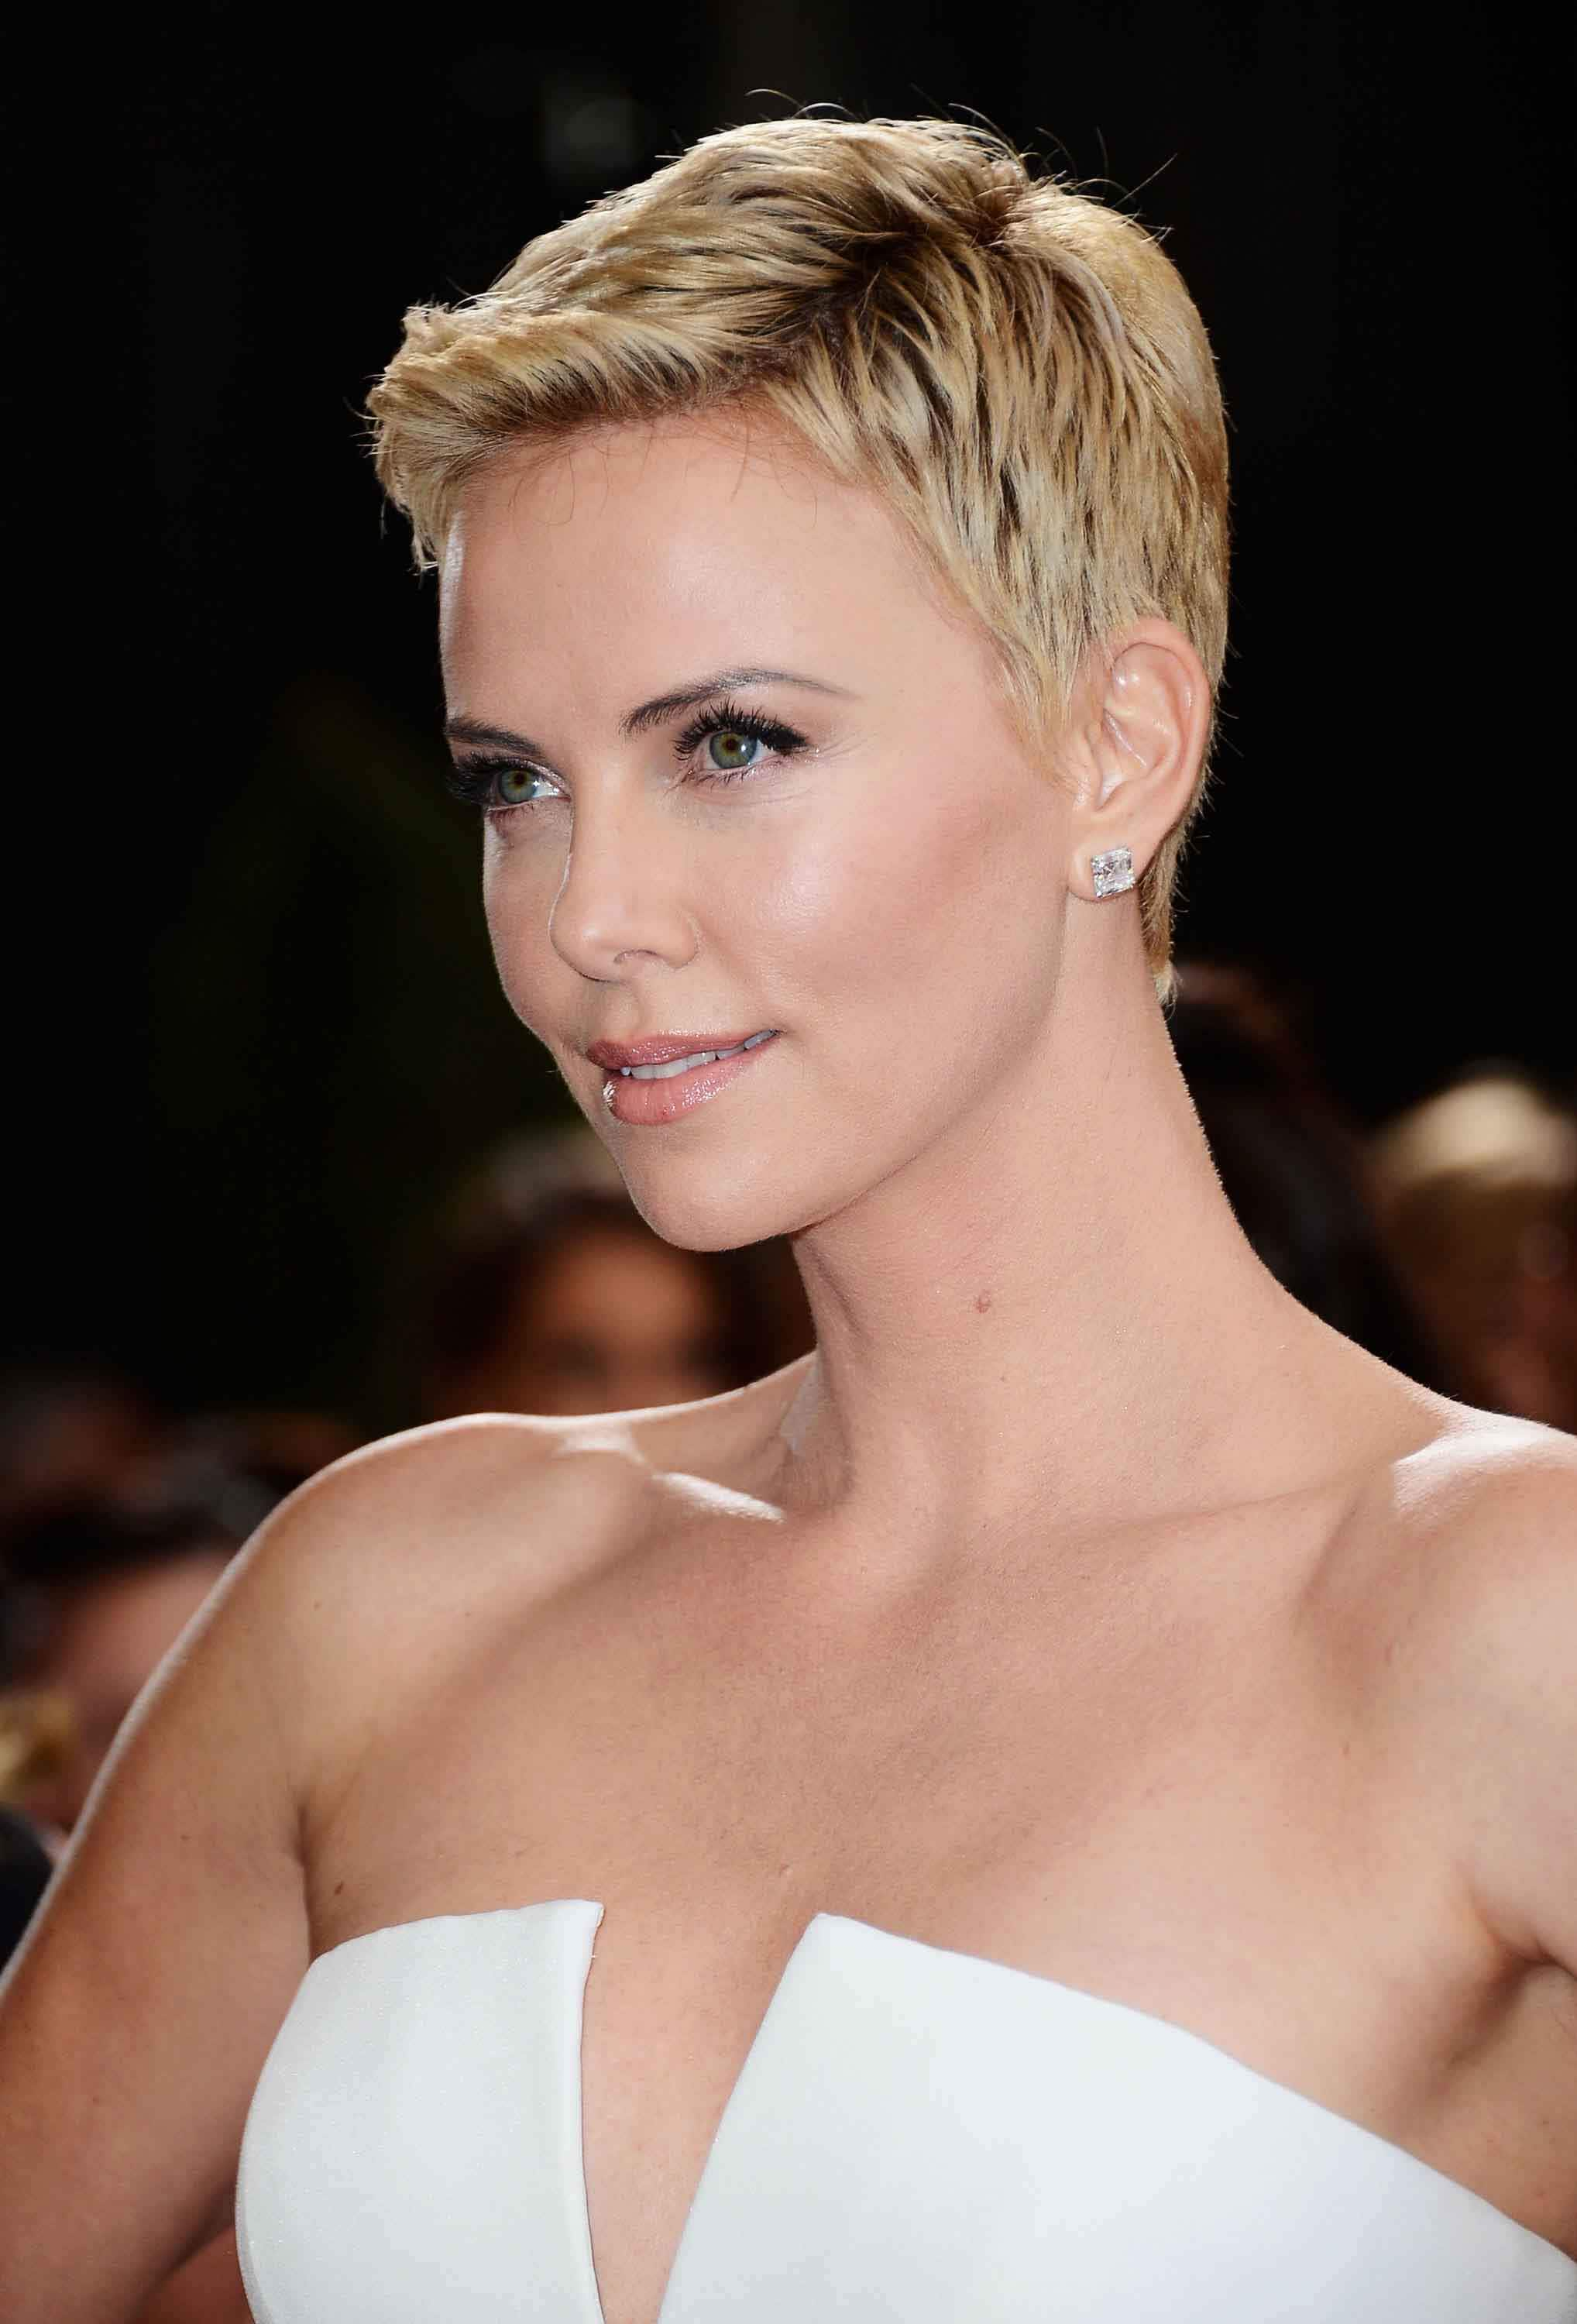 Pixie hairstyles Charlize Theron. Credit Getty Images